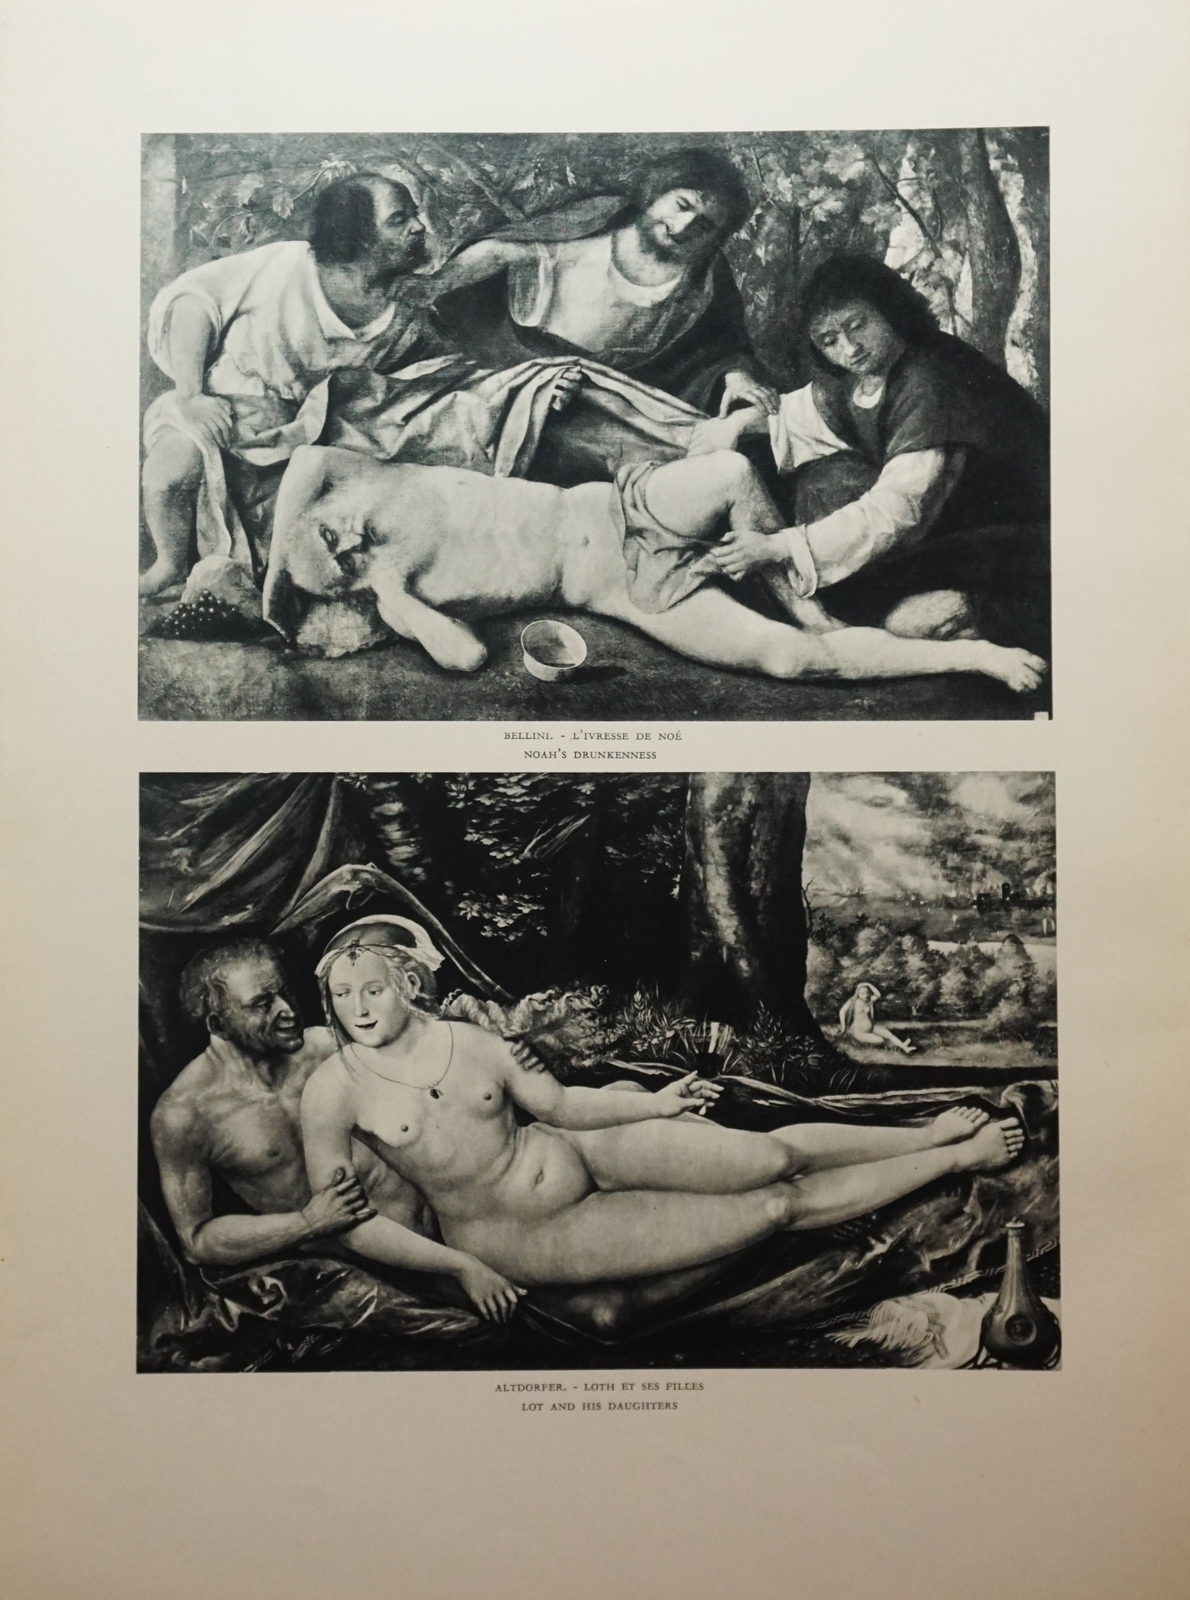 Primary image for  Noah's Drunkenness, Lot's Daughters,  Black and White, Verve Art, 1930s